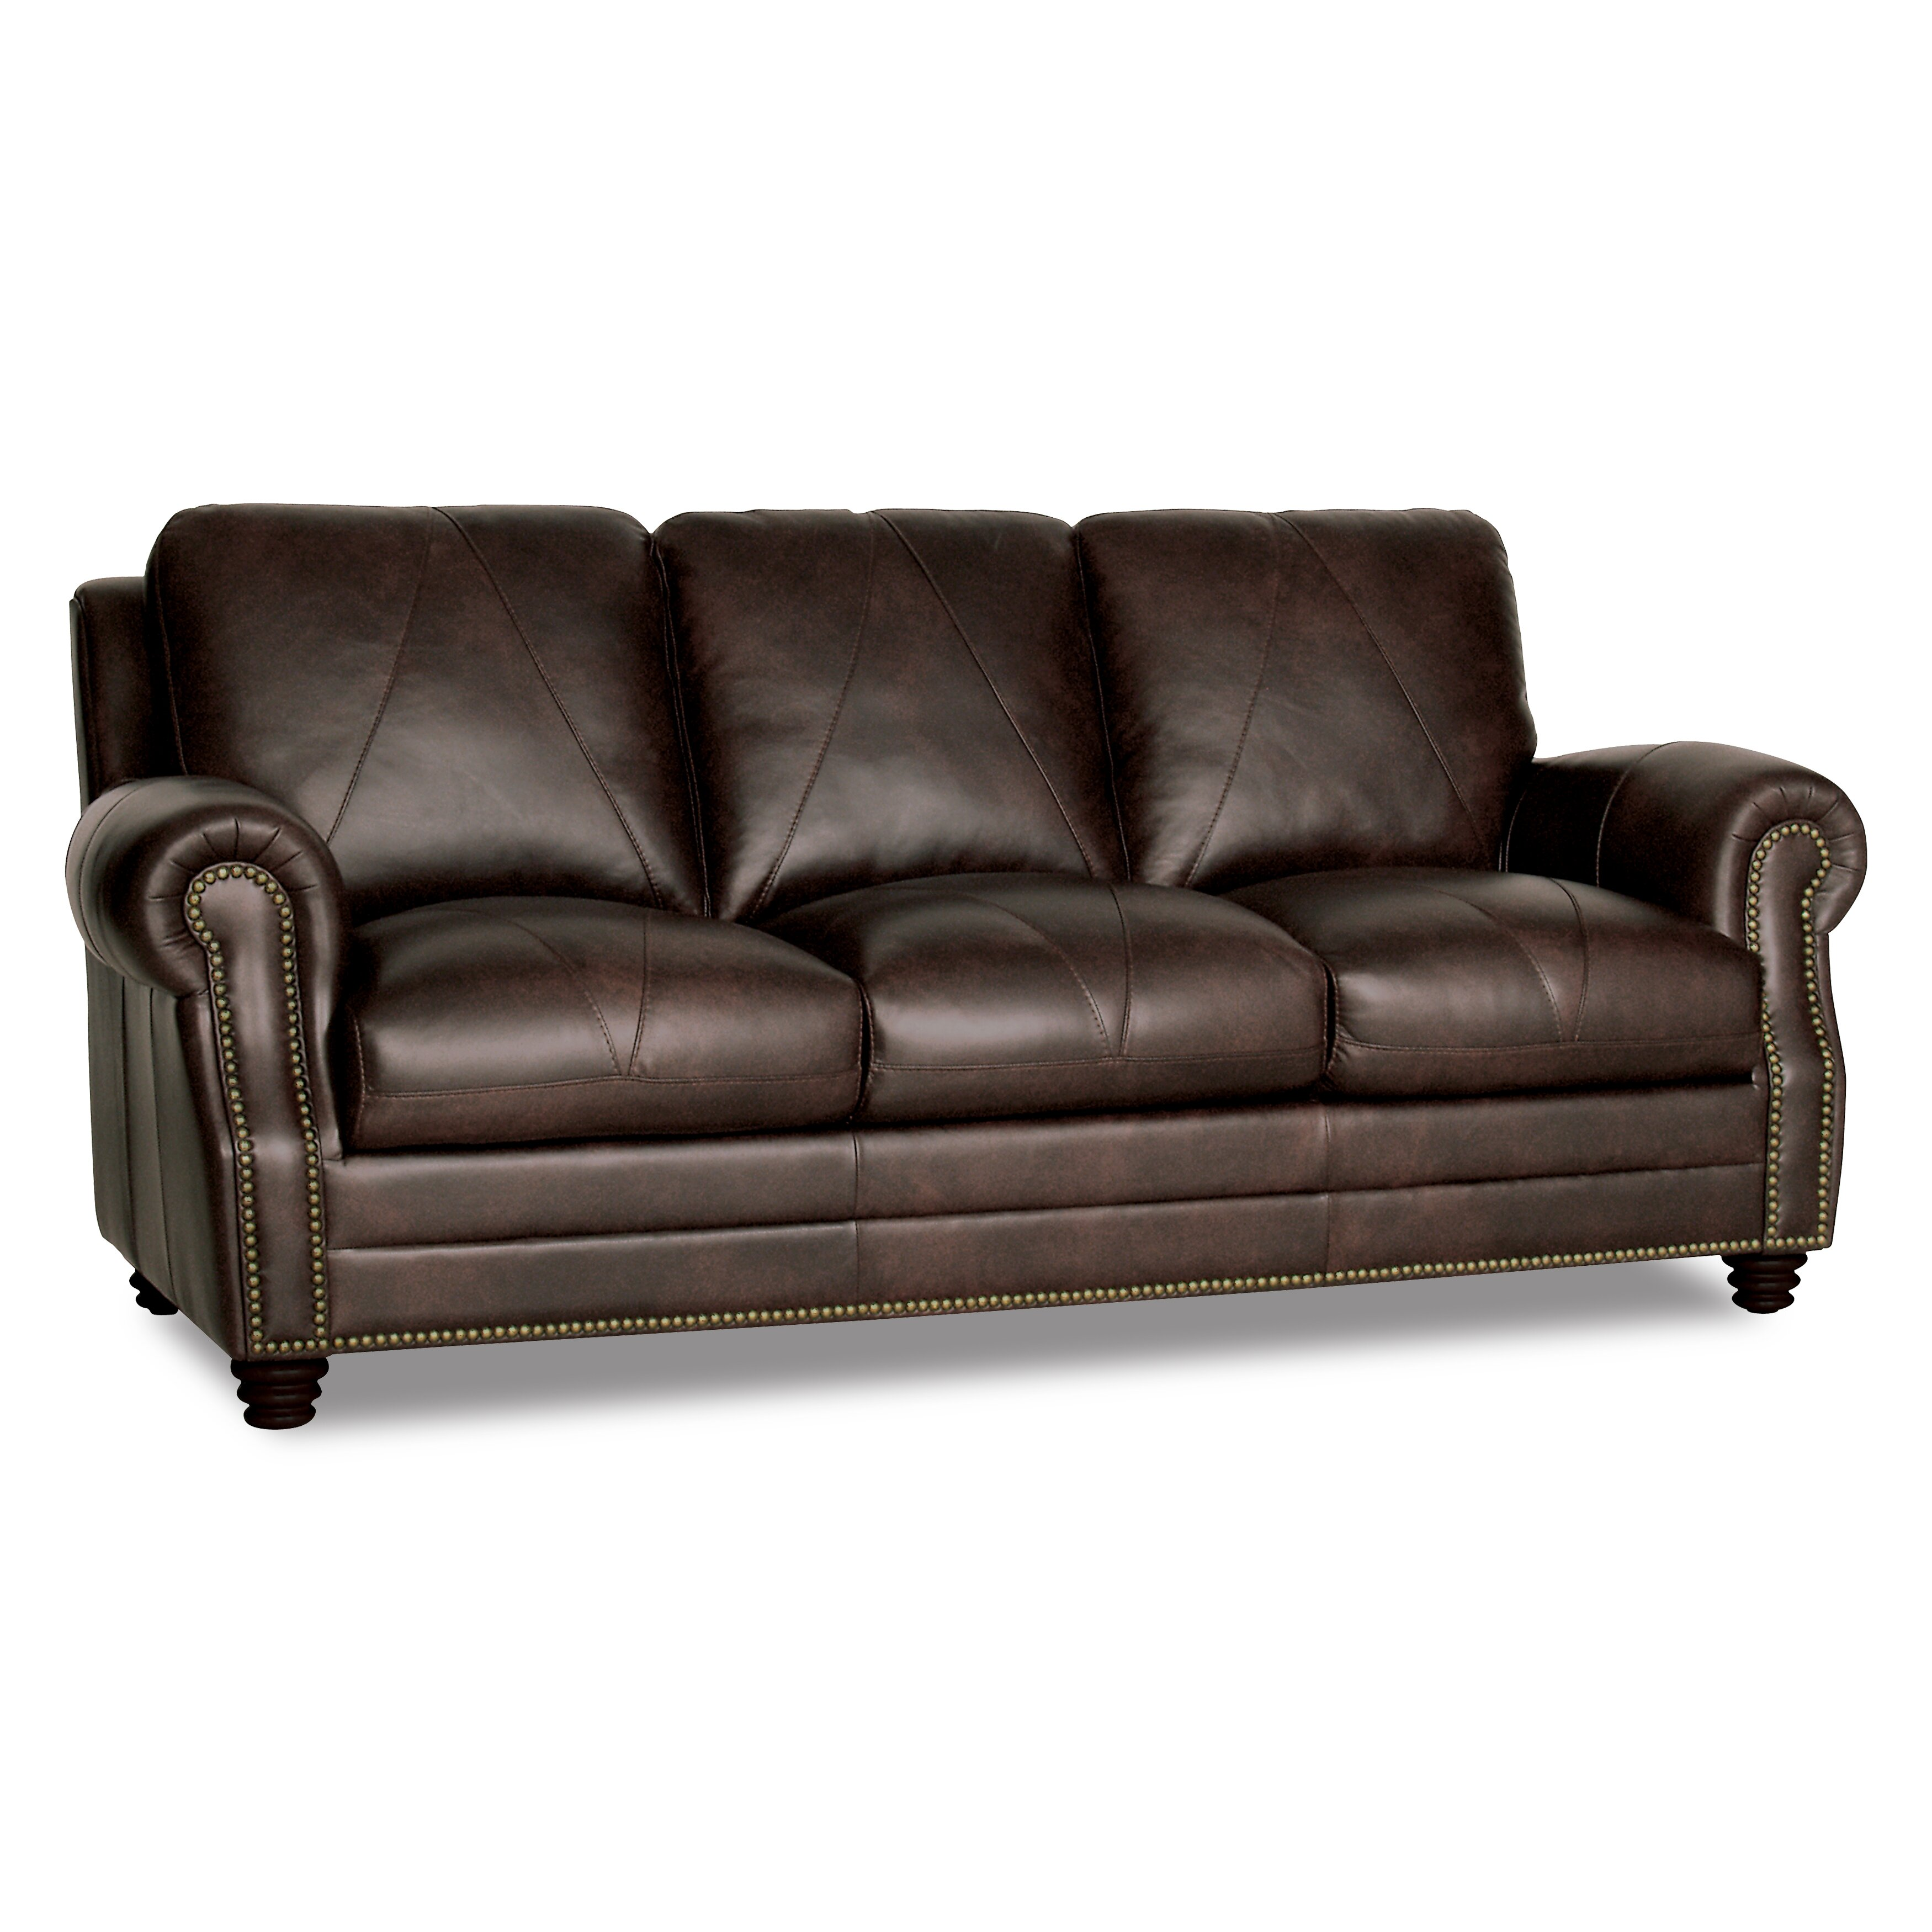 Reviews For Leather Sofas: Darby Home Co Gardner Leather Sofa & Reviews